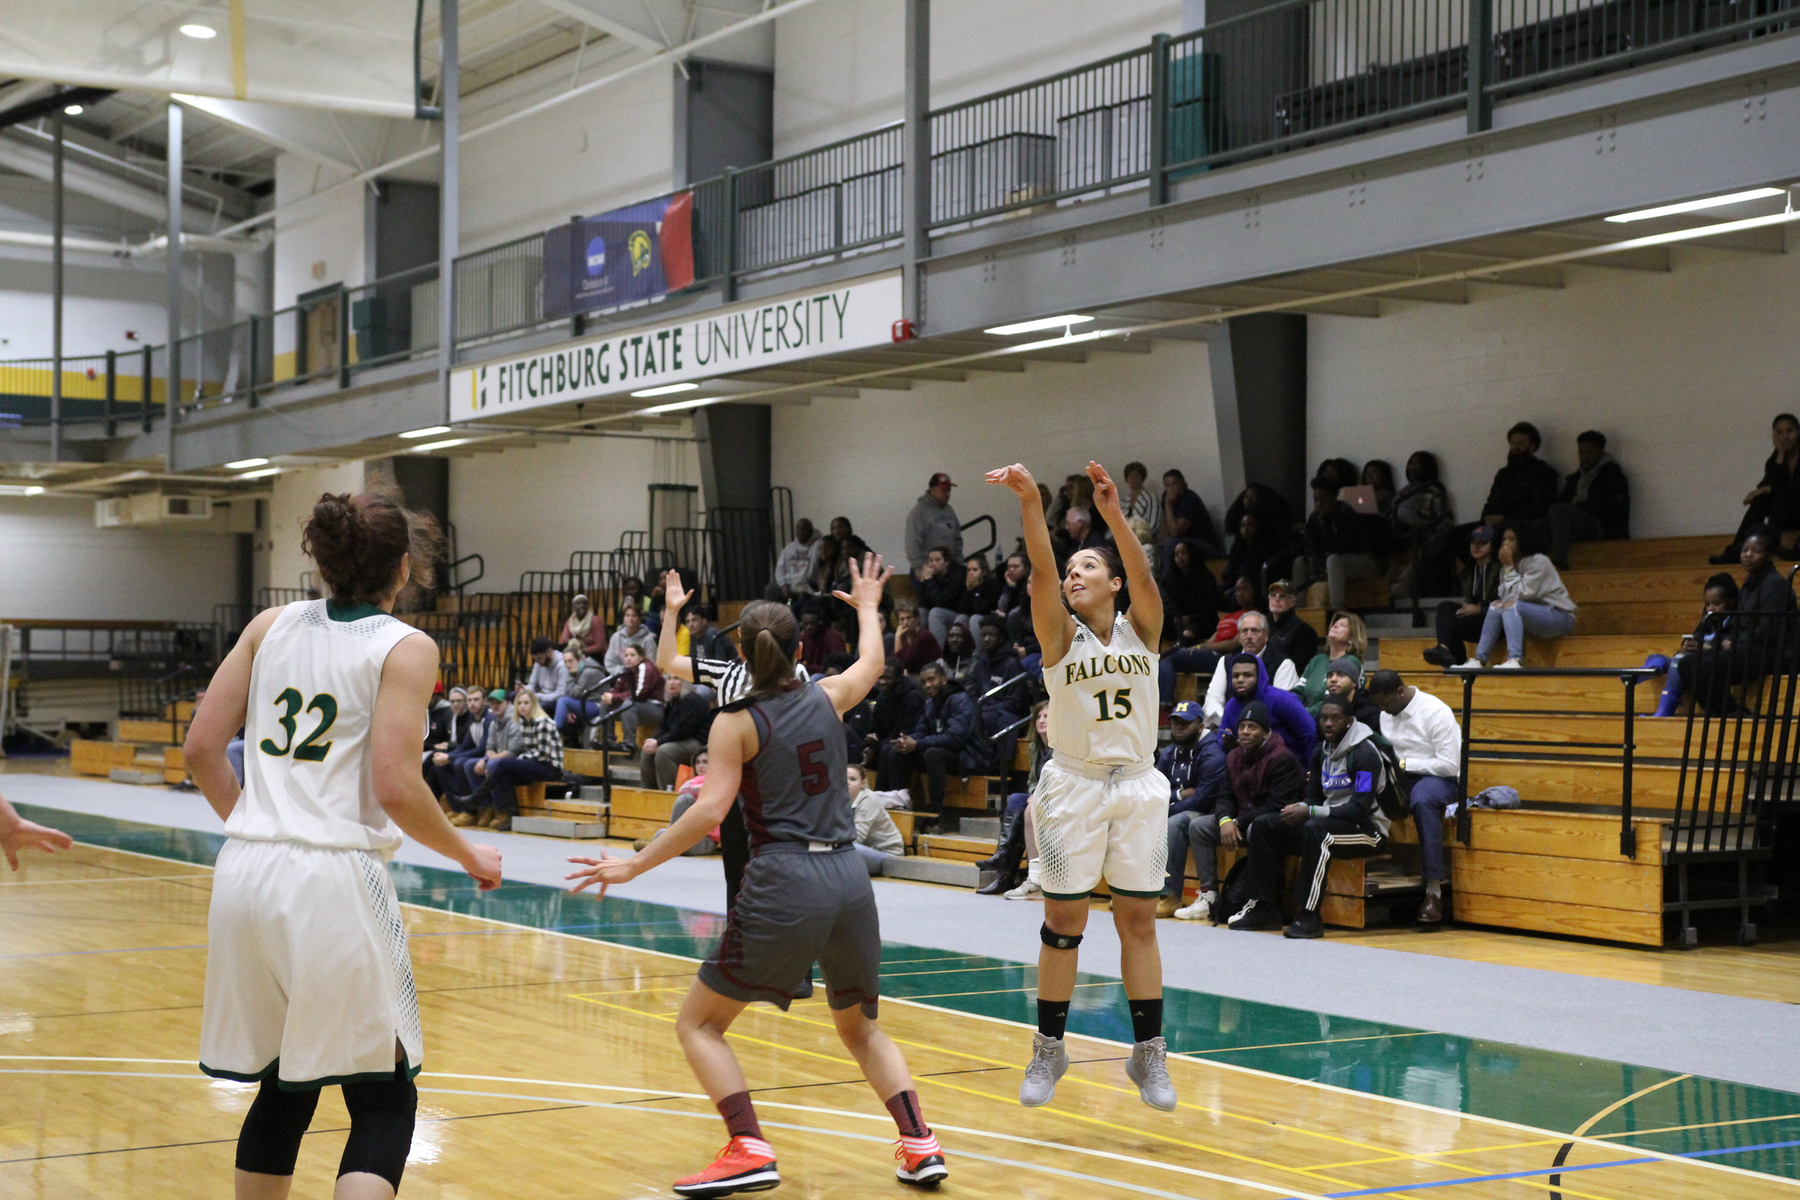 Westfield State Tops Fitchburg State, 108-55